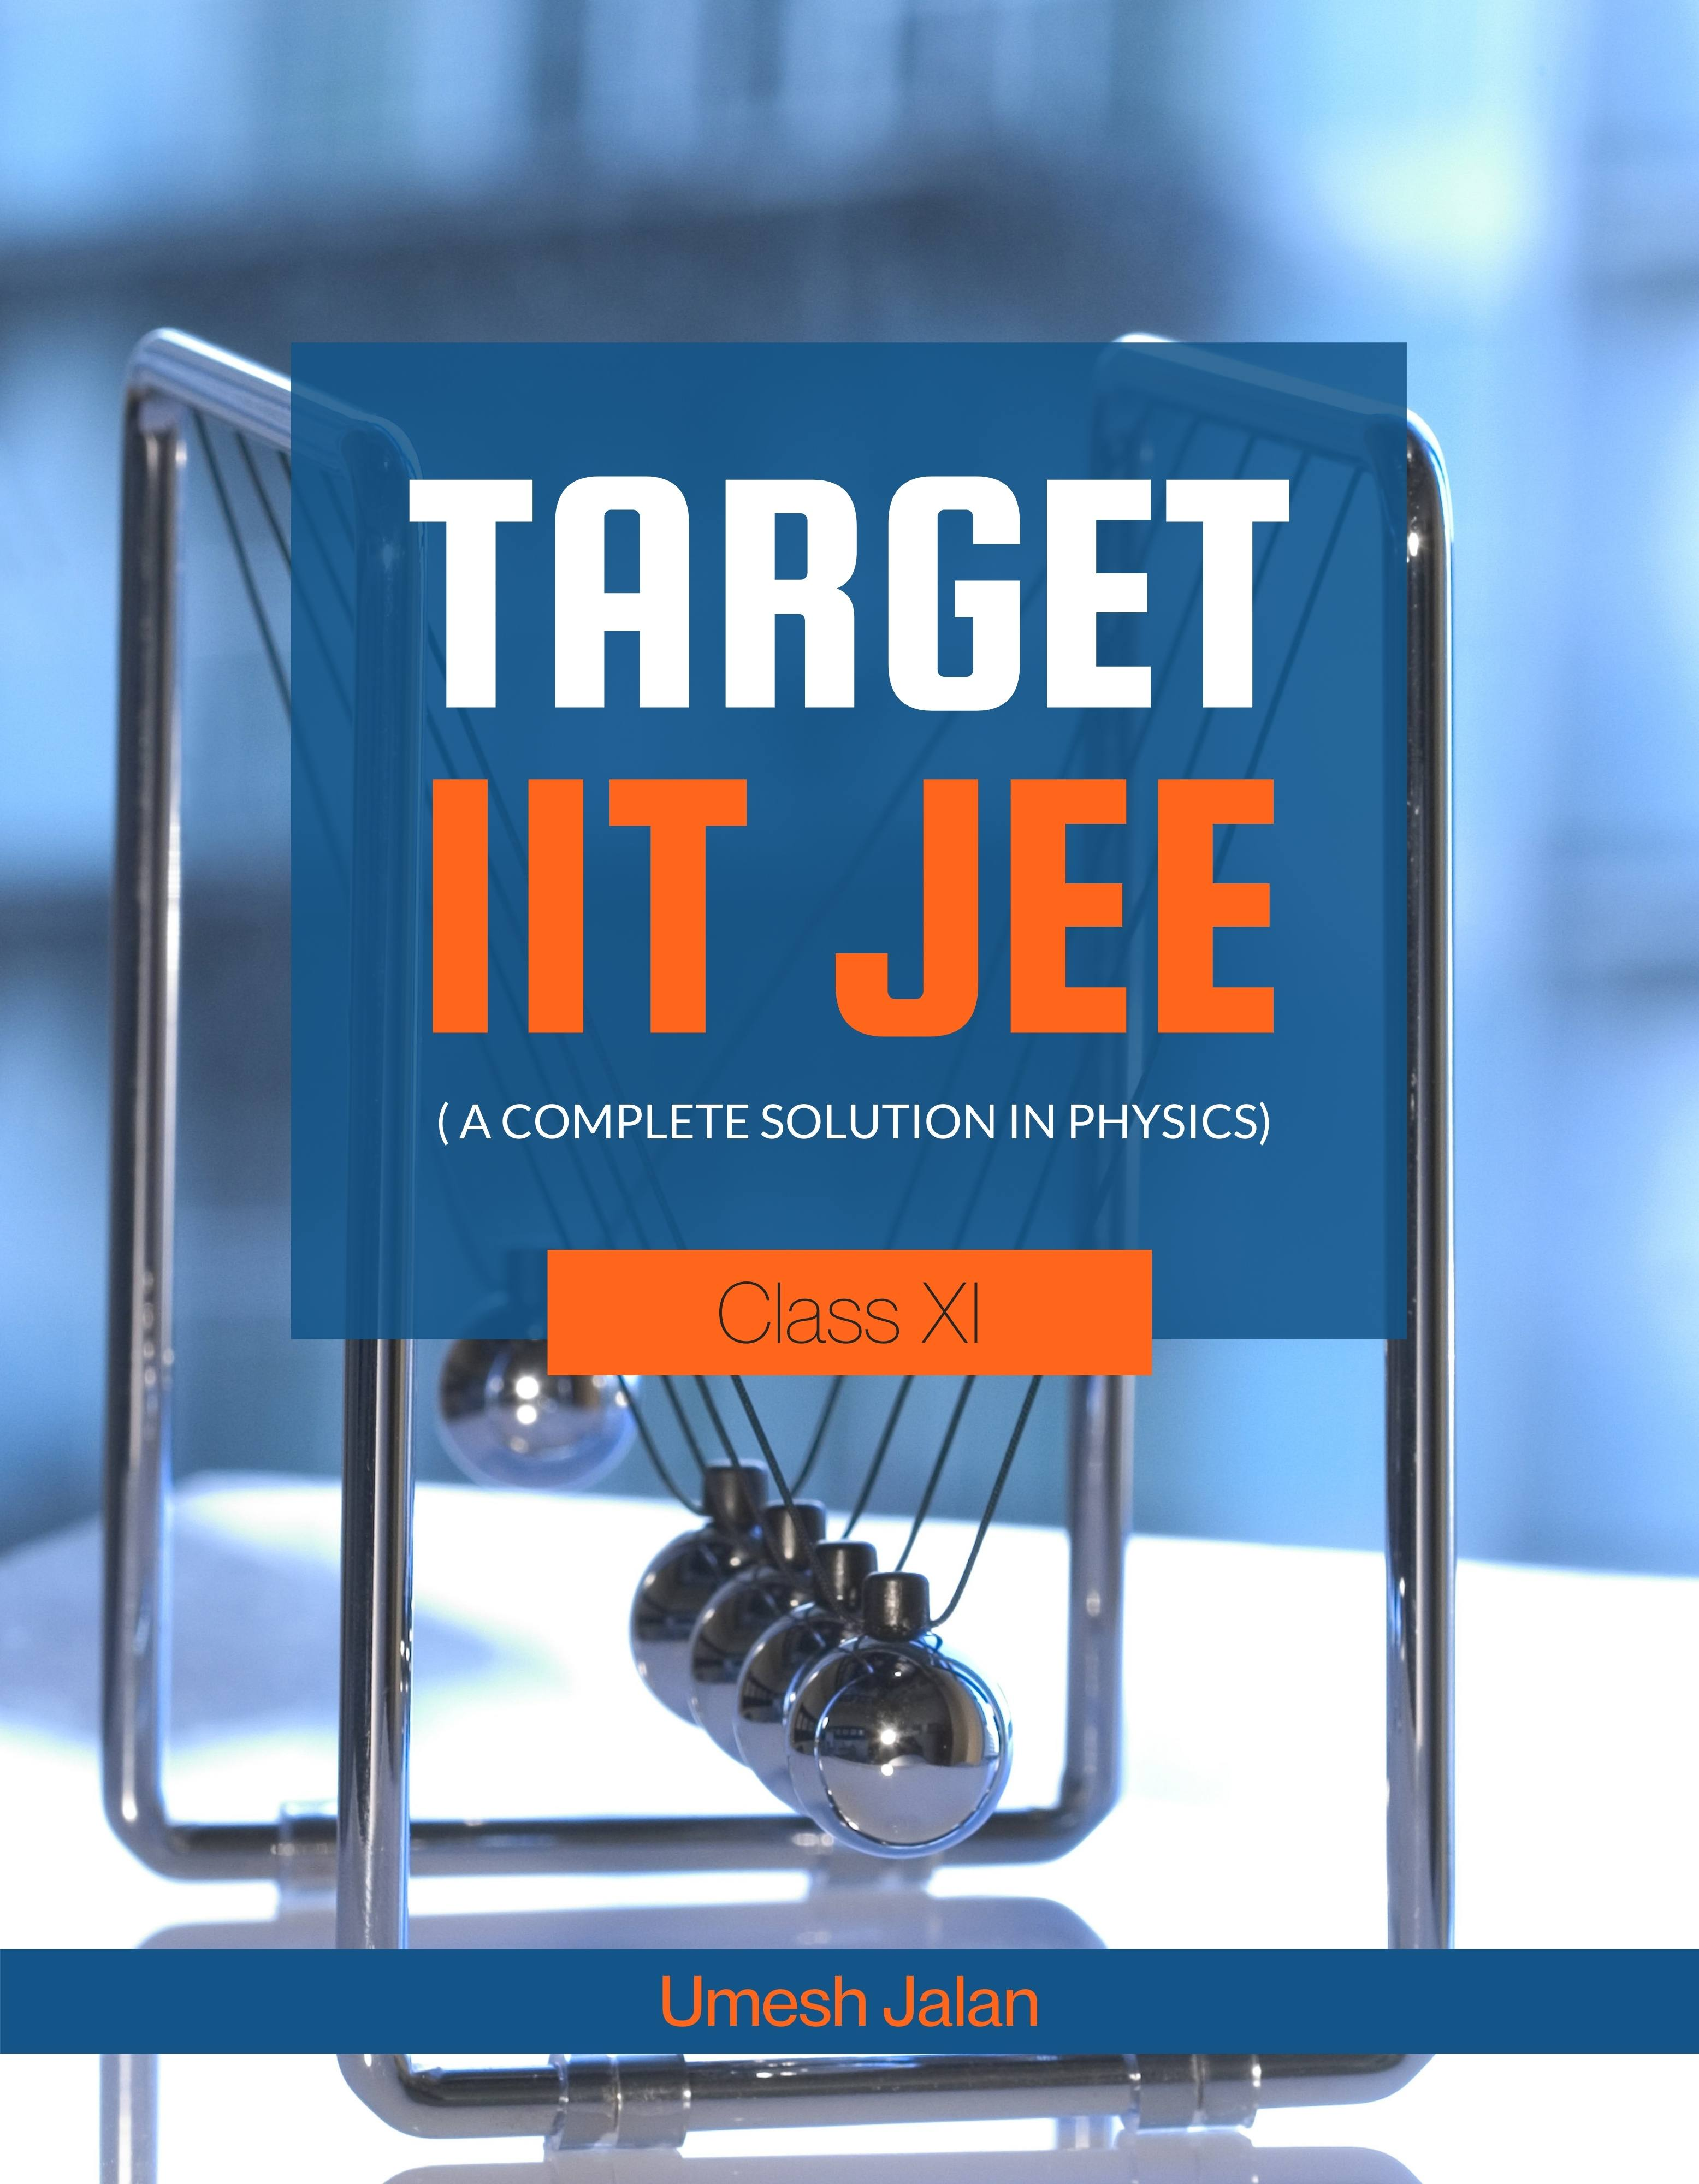 Target IIT JEE ( A complete solution in Physics) Class XI